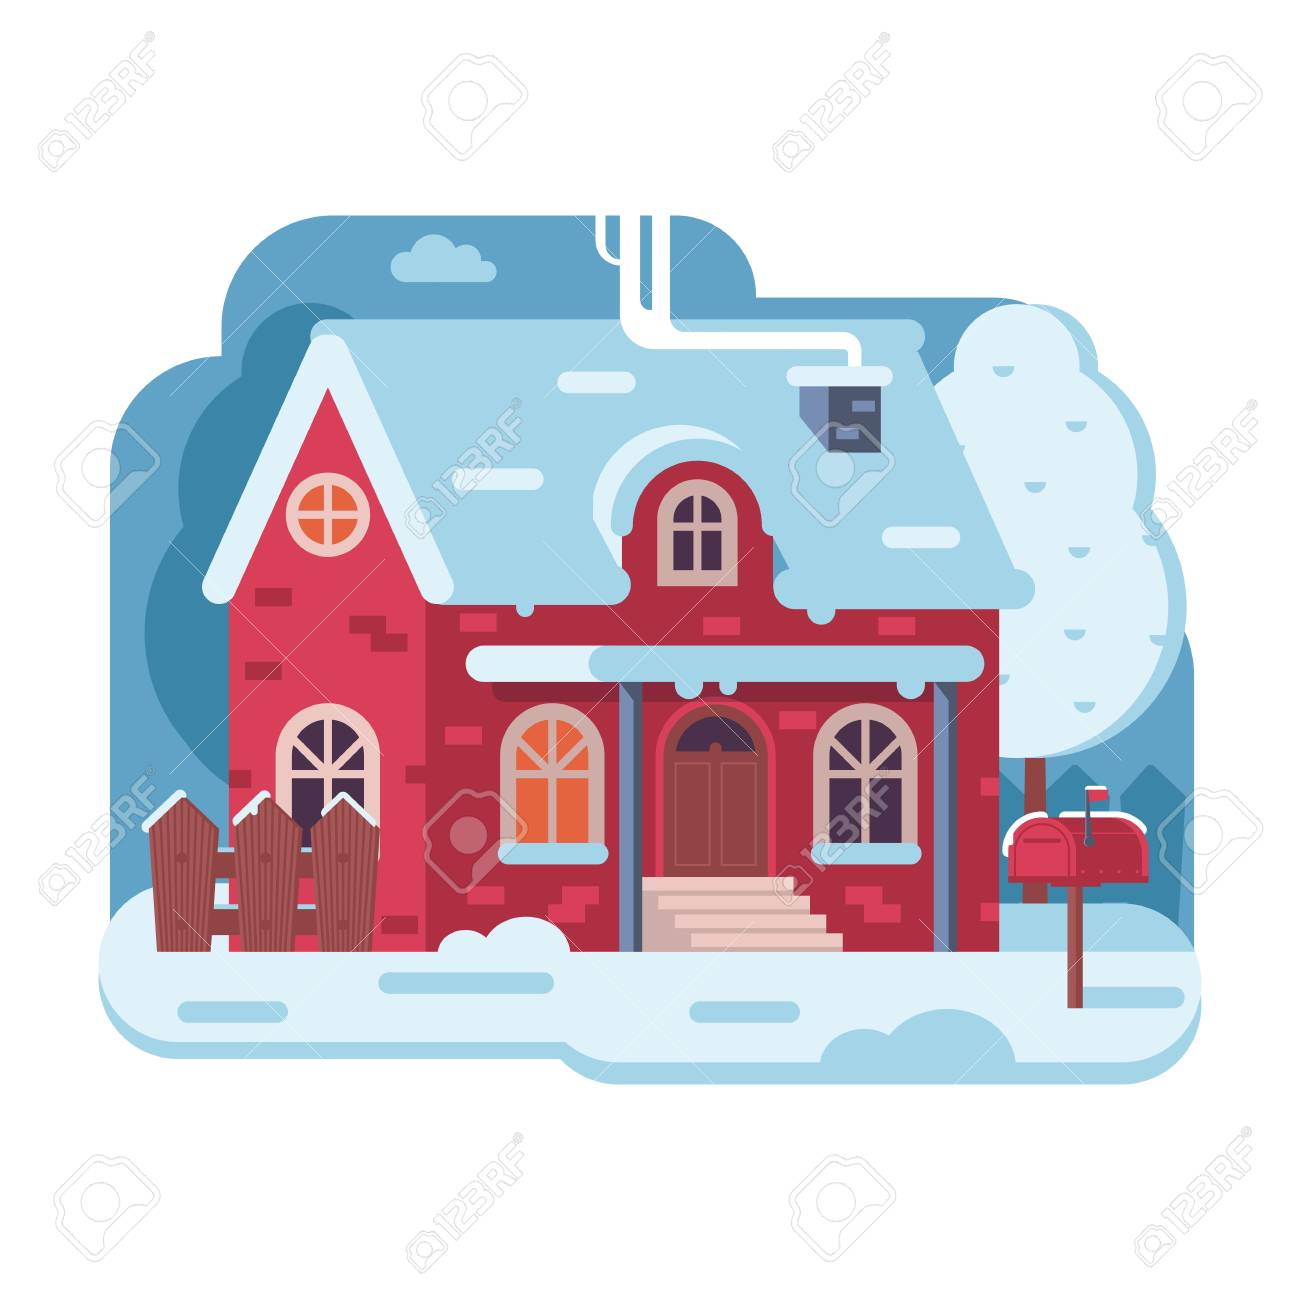 Tradi Home Snowy Scene With Red Farm Winter Home With Smoking Chimney On